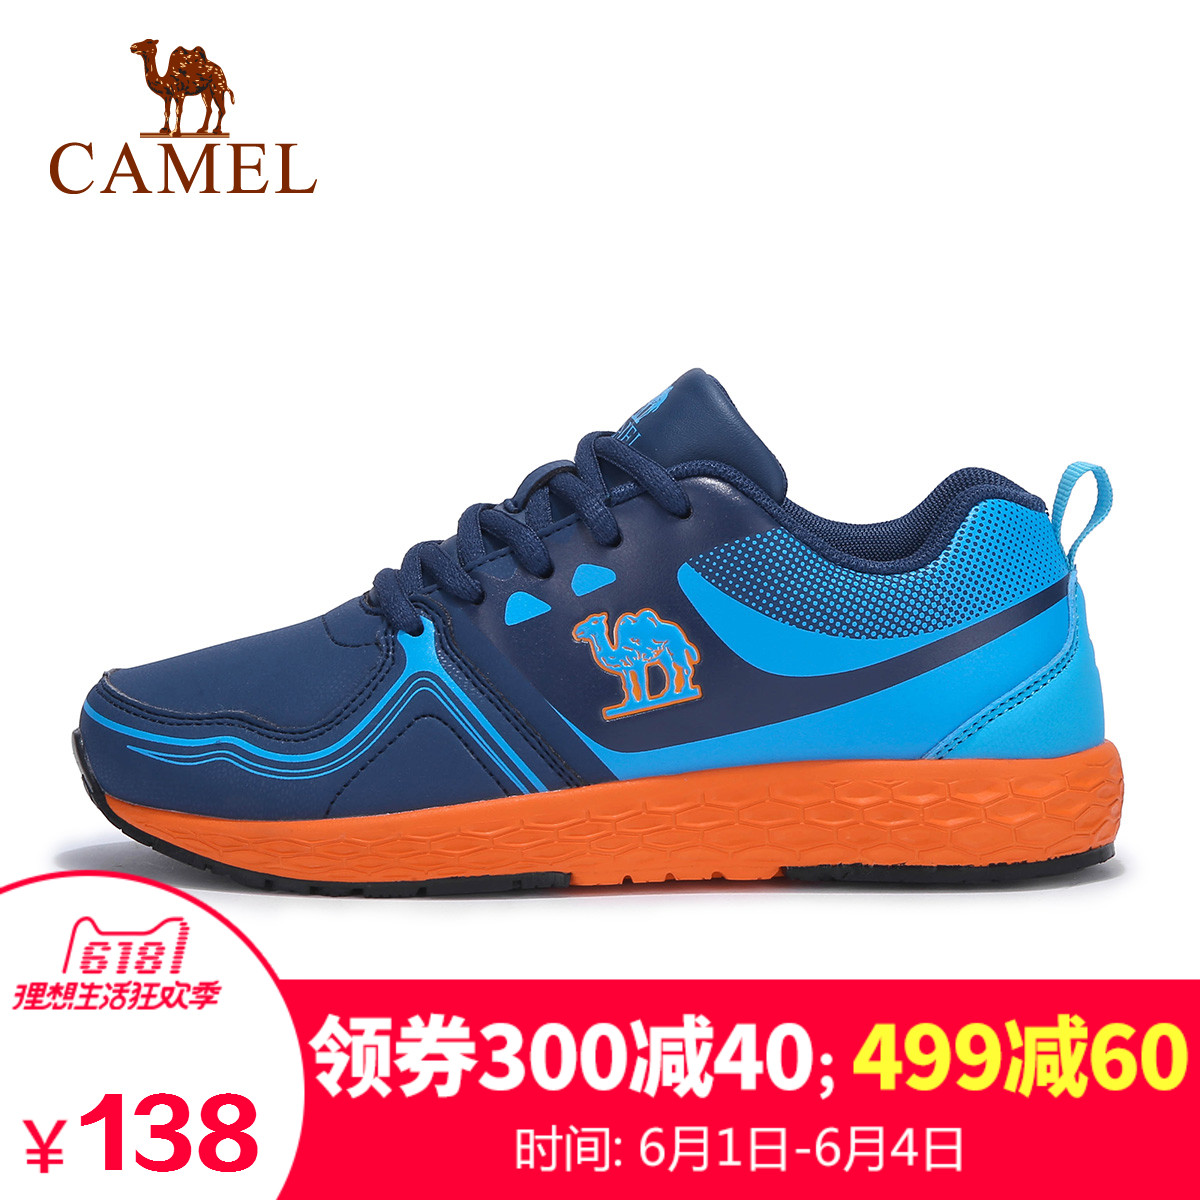 c5c74b9a9 Camel children's shoes in the big boy boy wear running shoes children's  honeycomb bottom sports shoes